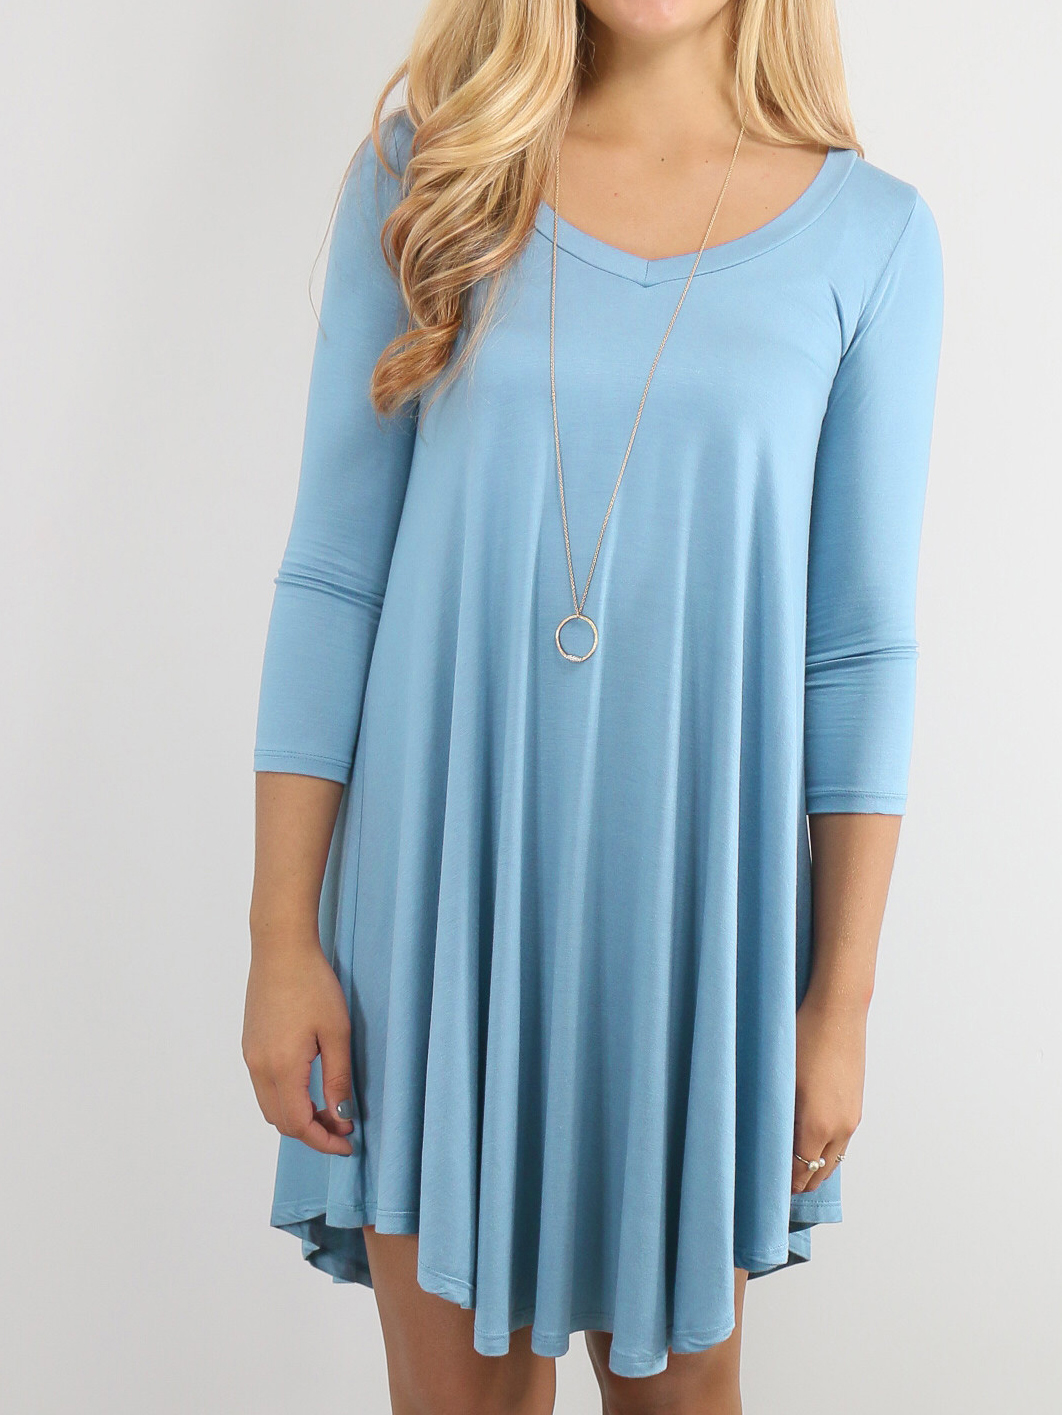 49675e1a89 Blue V-Neck Long Sleeve Tshirt Dress -SheIn(Sheinside)